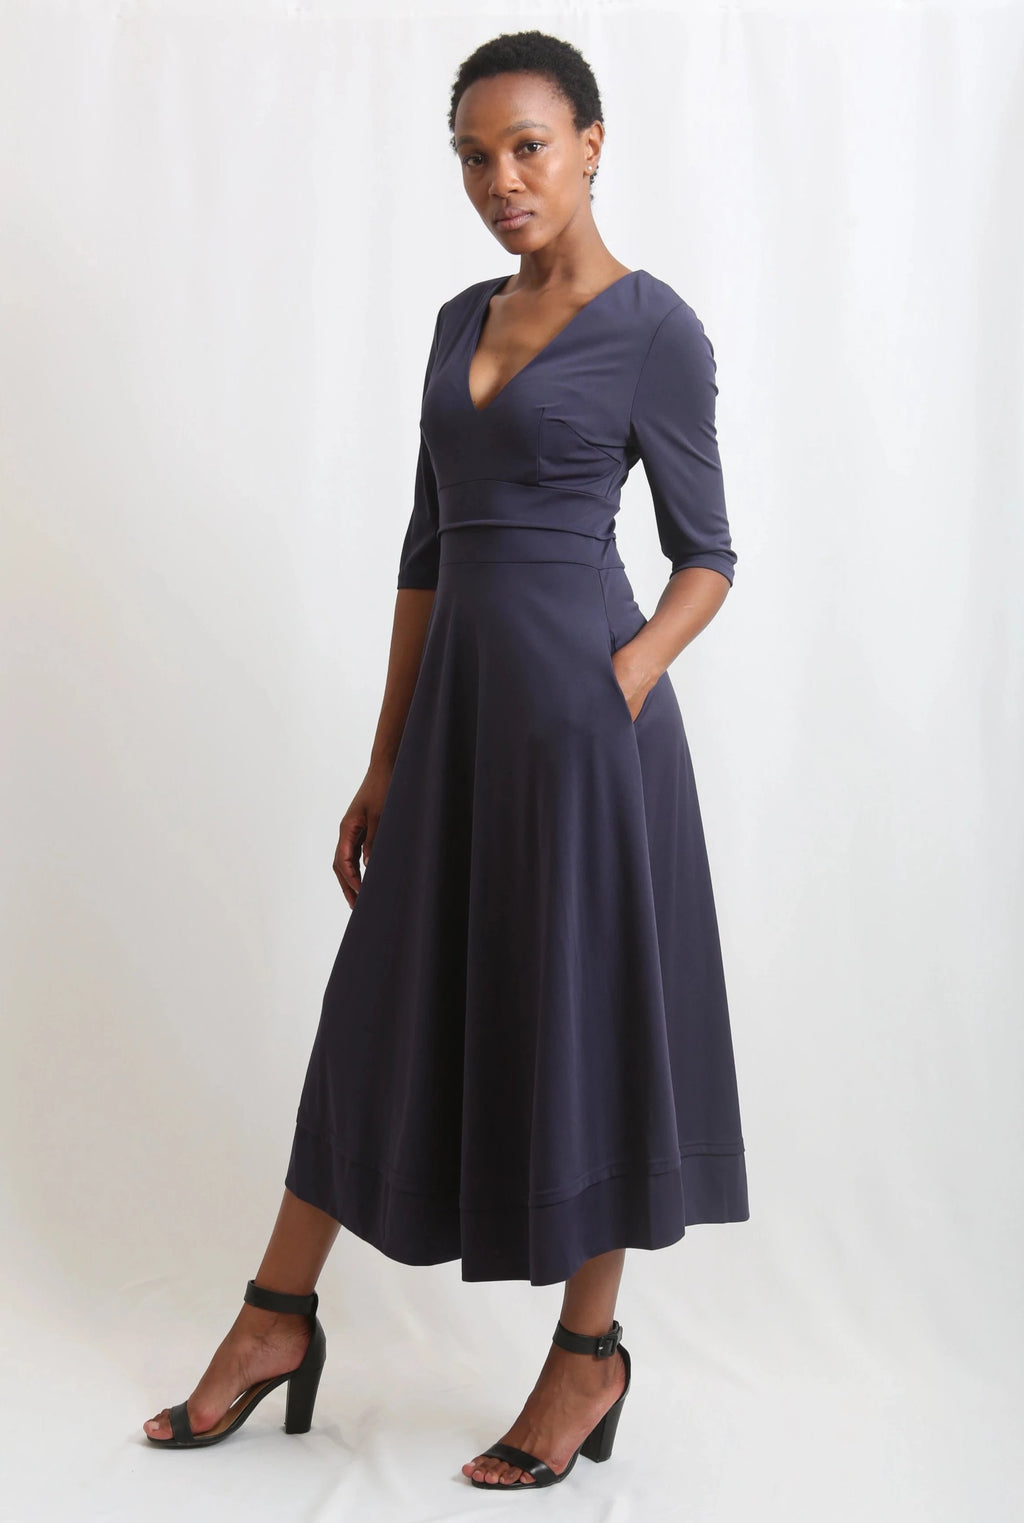 Deep Vneck maxi long dress navy available in size small to xxxl in stretchable material at Zinhleolivia.com